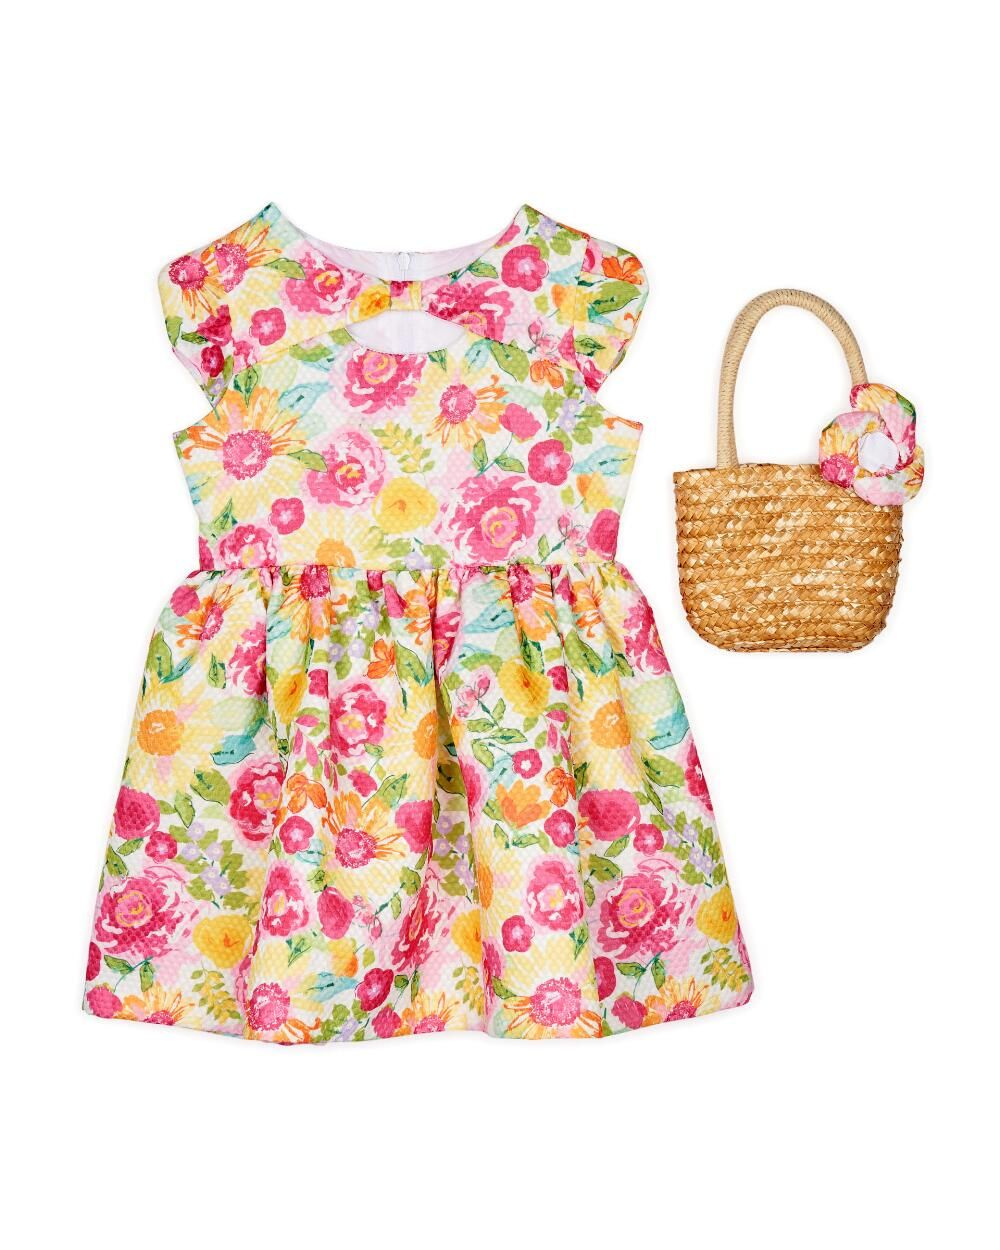 Pin By Stein Mart On Baby Girl Outfits Modest Girls Dresses Bonnie Jean Girls Jeans [ 1250 x 1000 Pixel ]